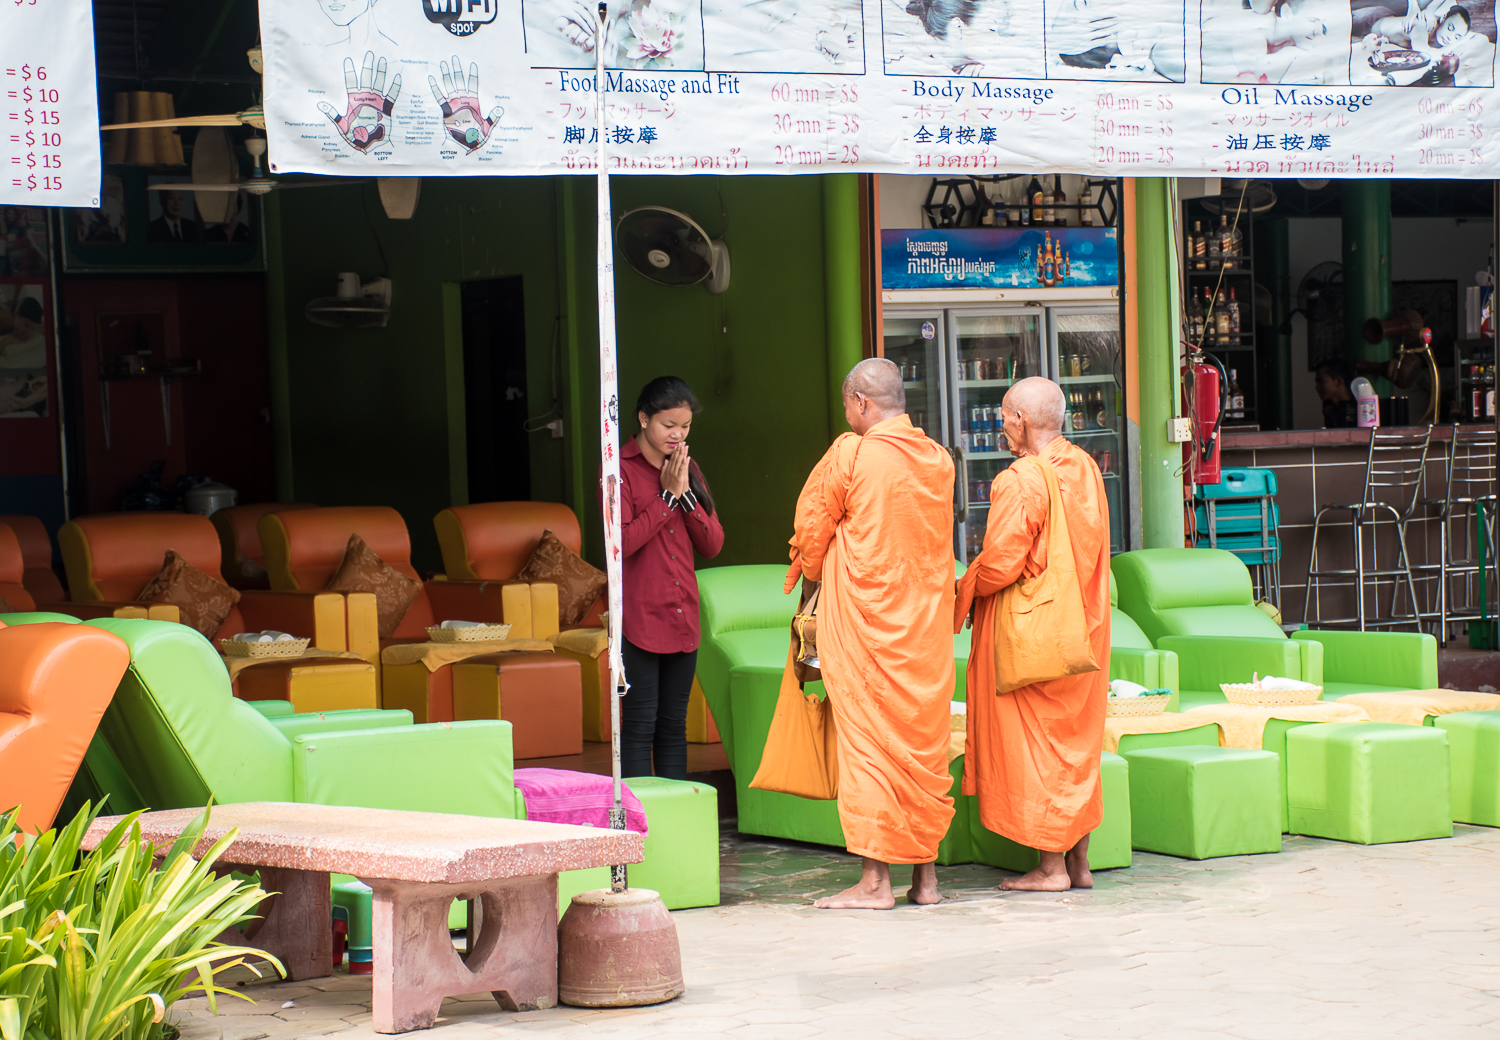 Monks praying and giving blessings in the siem reap market